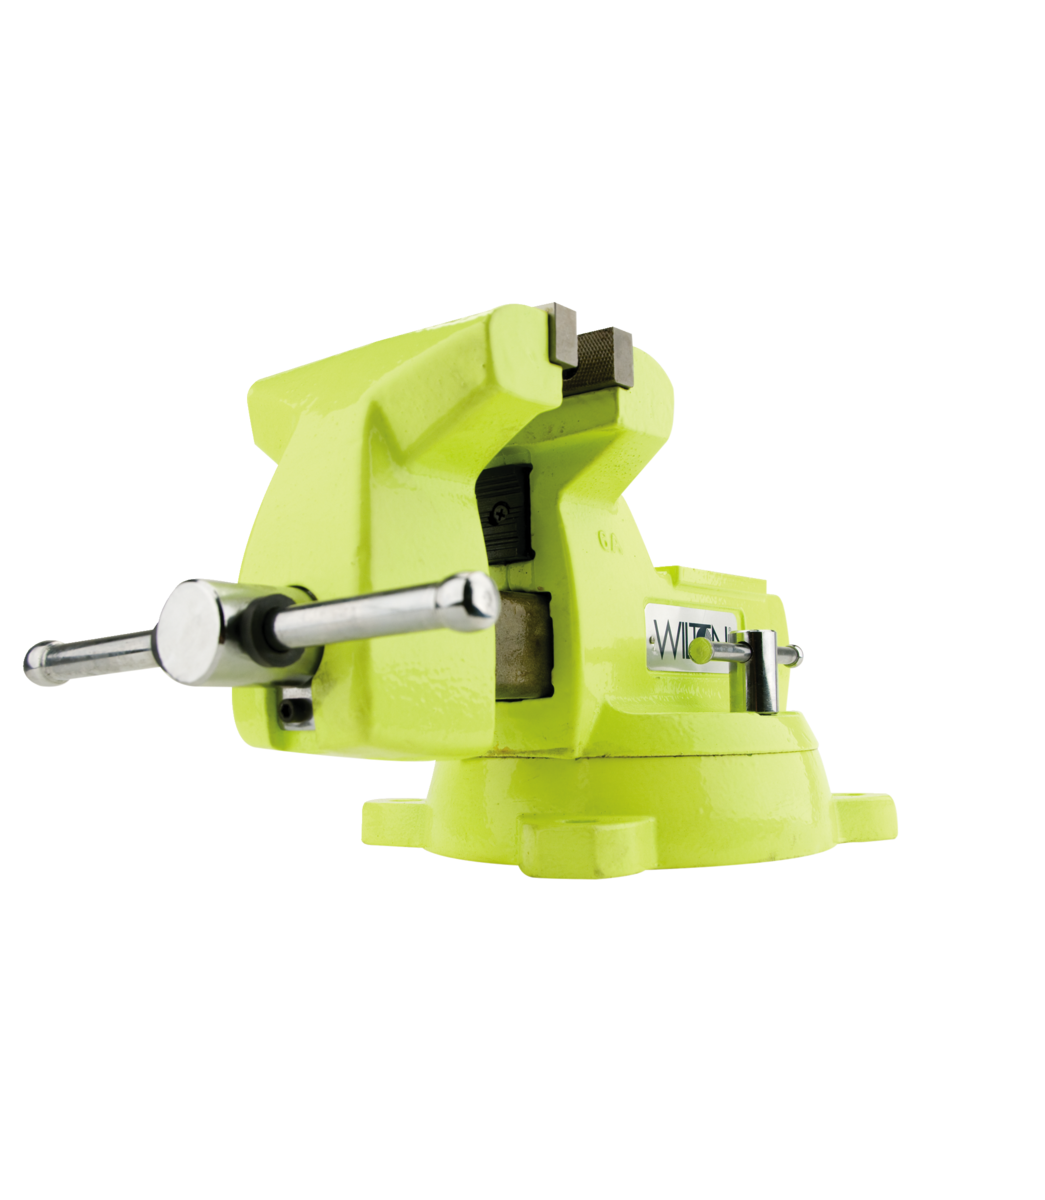 "Manual: 1550, High-Visibility Safety 5"" Vise with Swivel Base"